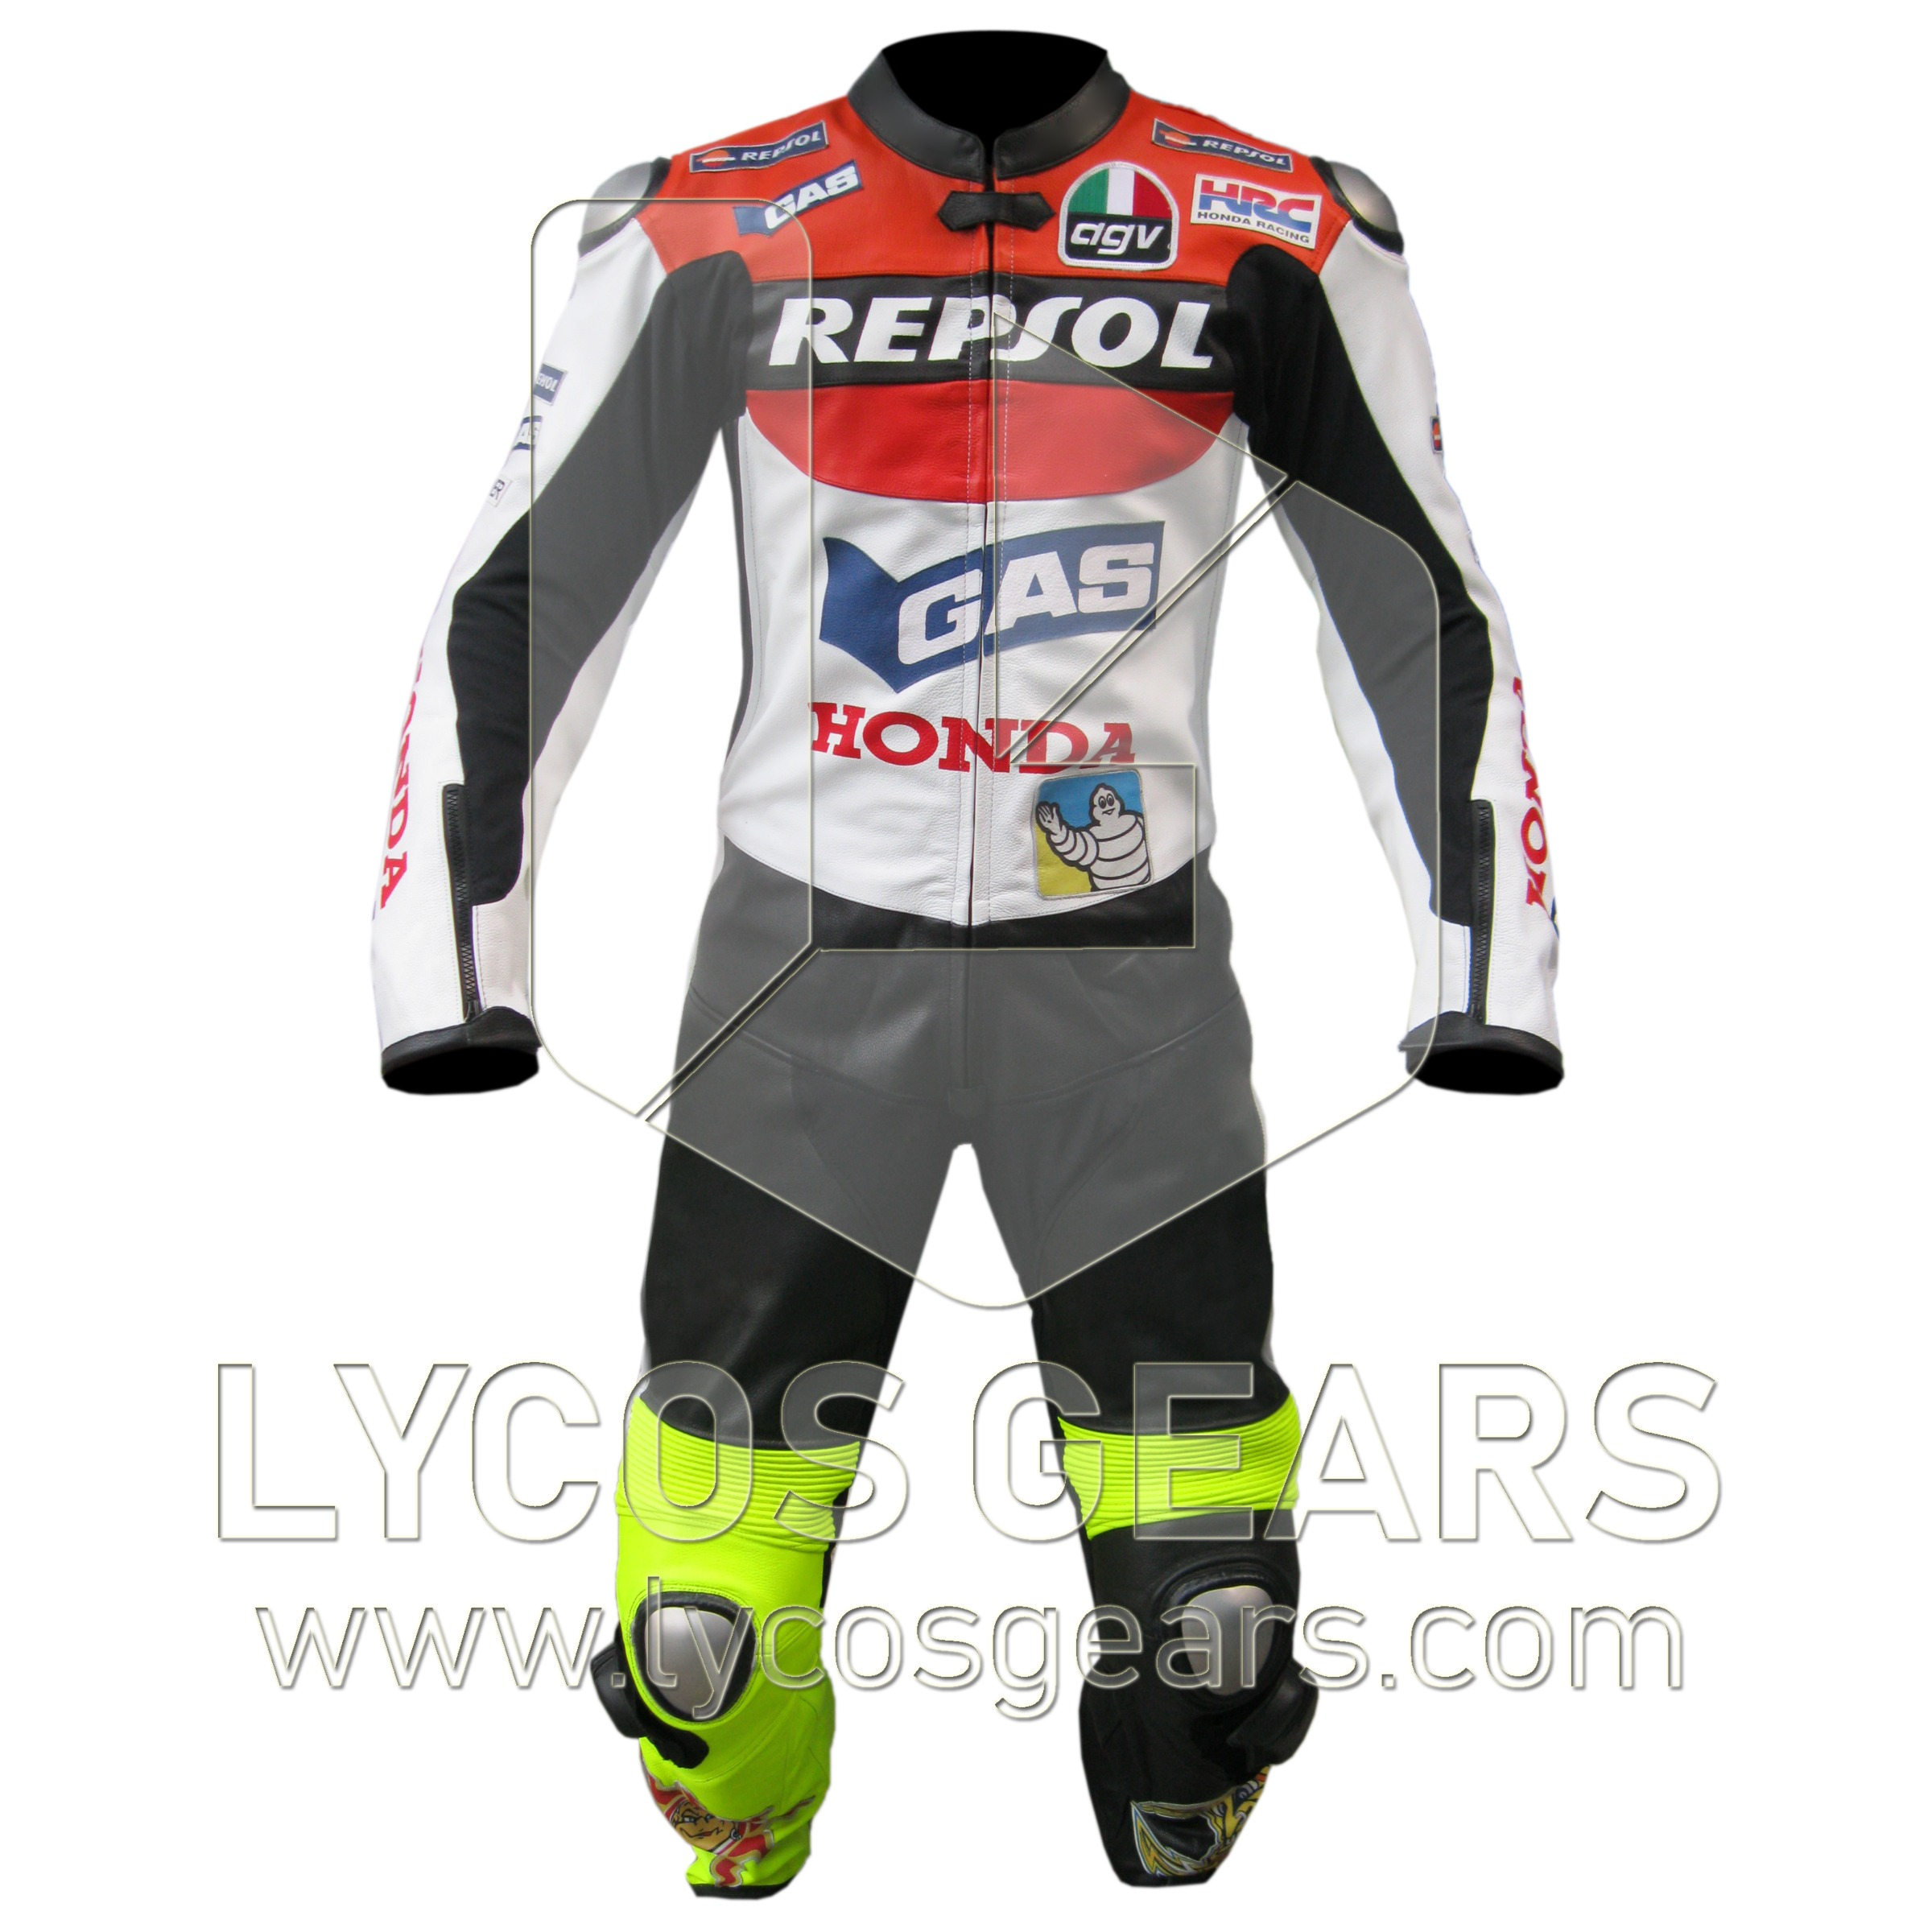 Valentino Rossi VR46 Motogp Motorcycle Leather Racing Jacket Available All Size